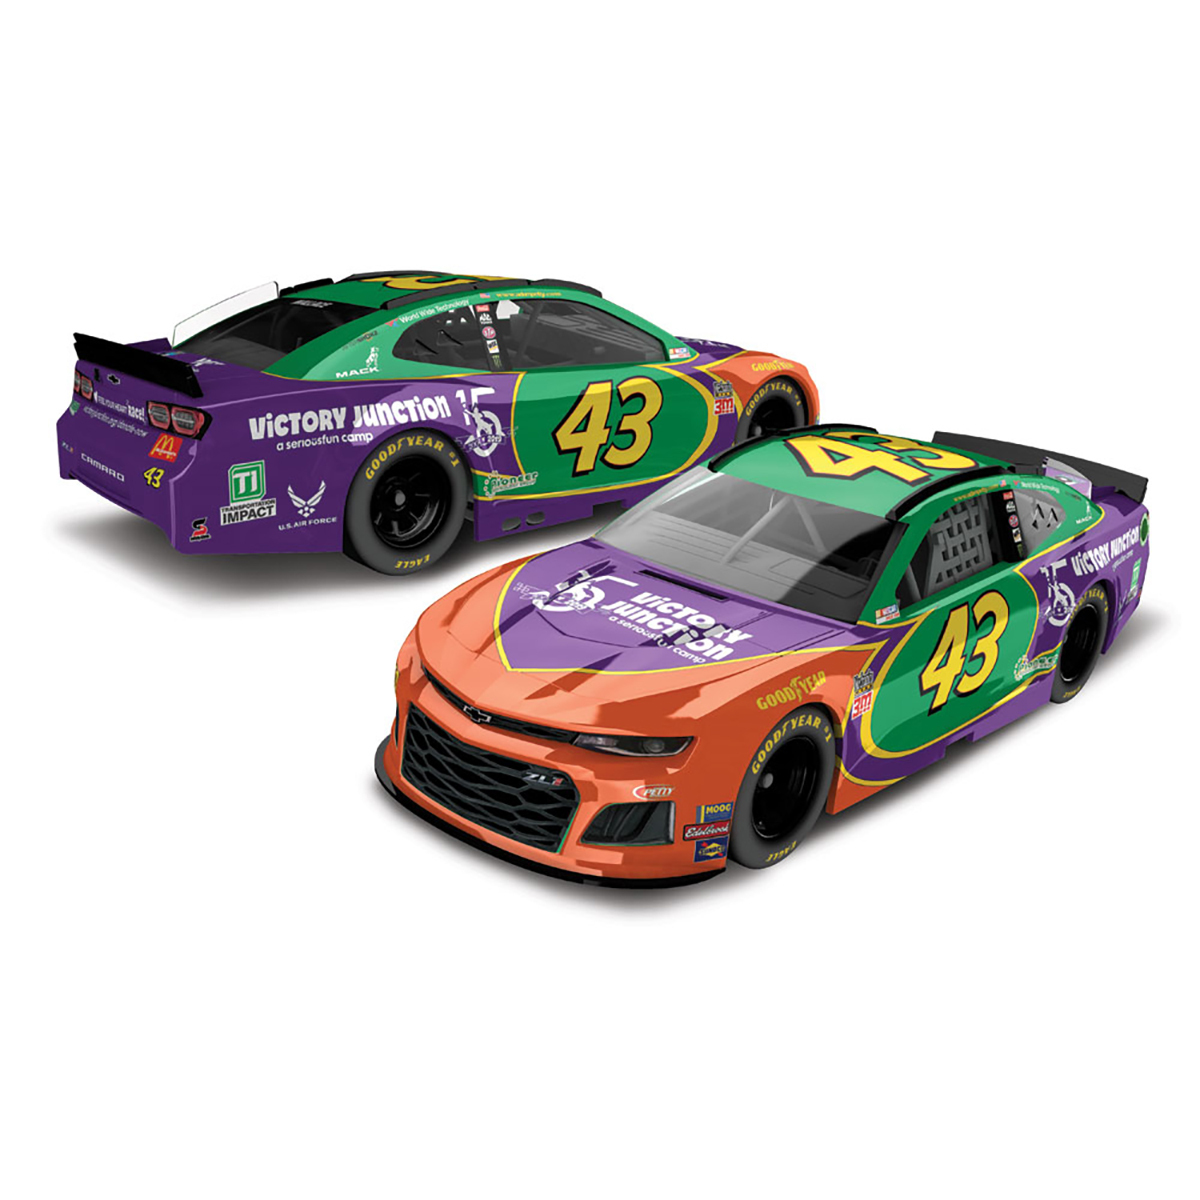 Bubba Wallace #43 2019 Victory Junction Darlington Monster Energy NASCAR Cup Series HO 1:24 - Die Cast